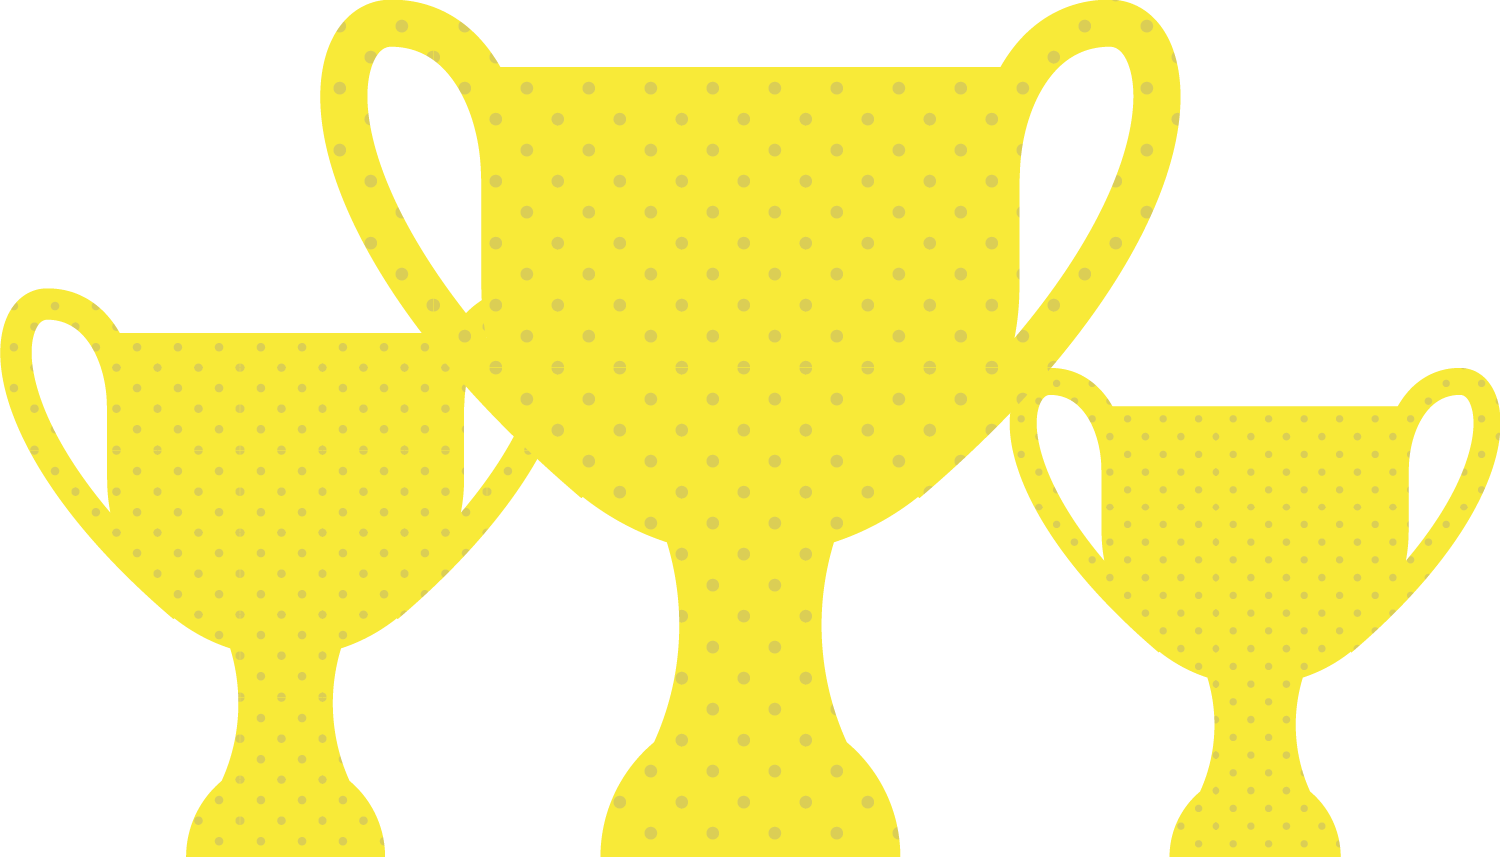 Cup-Image.png